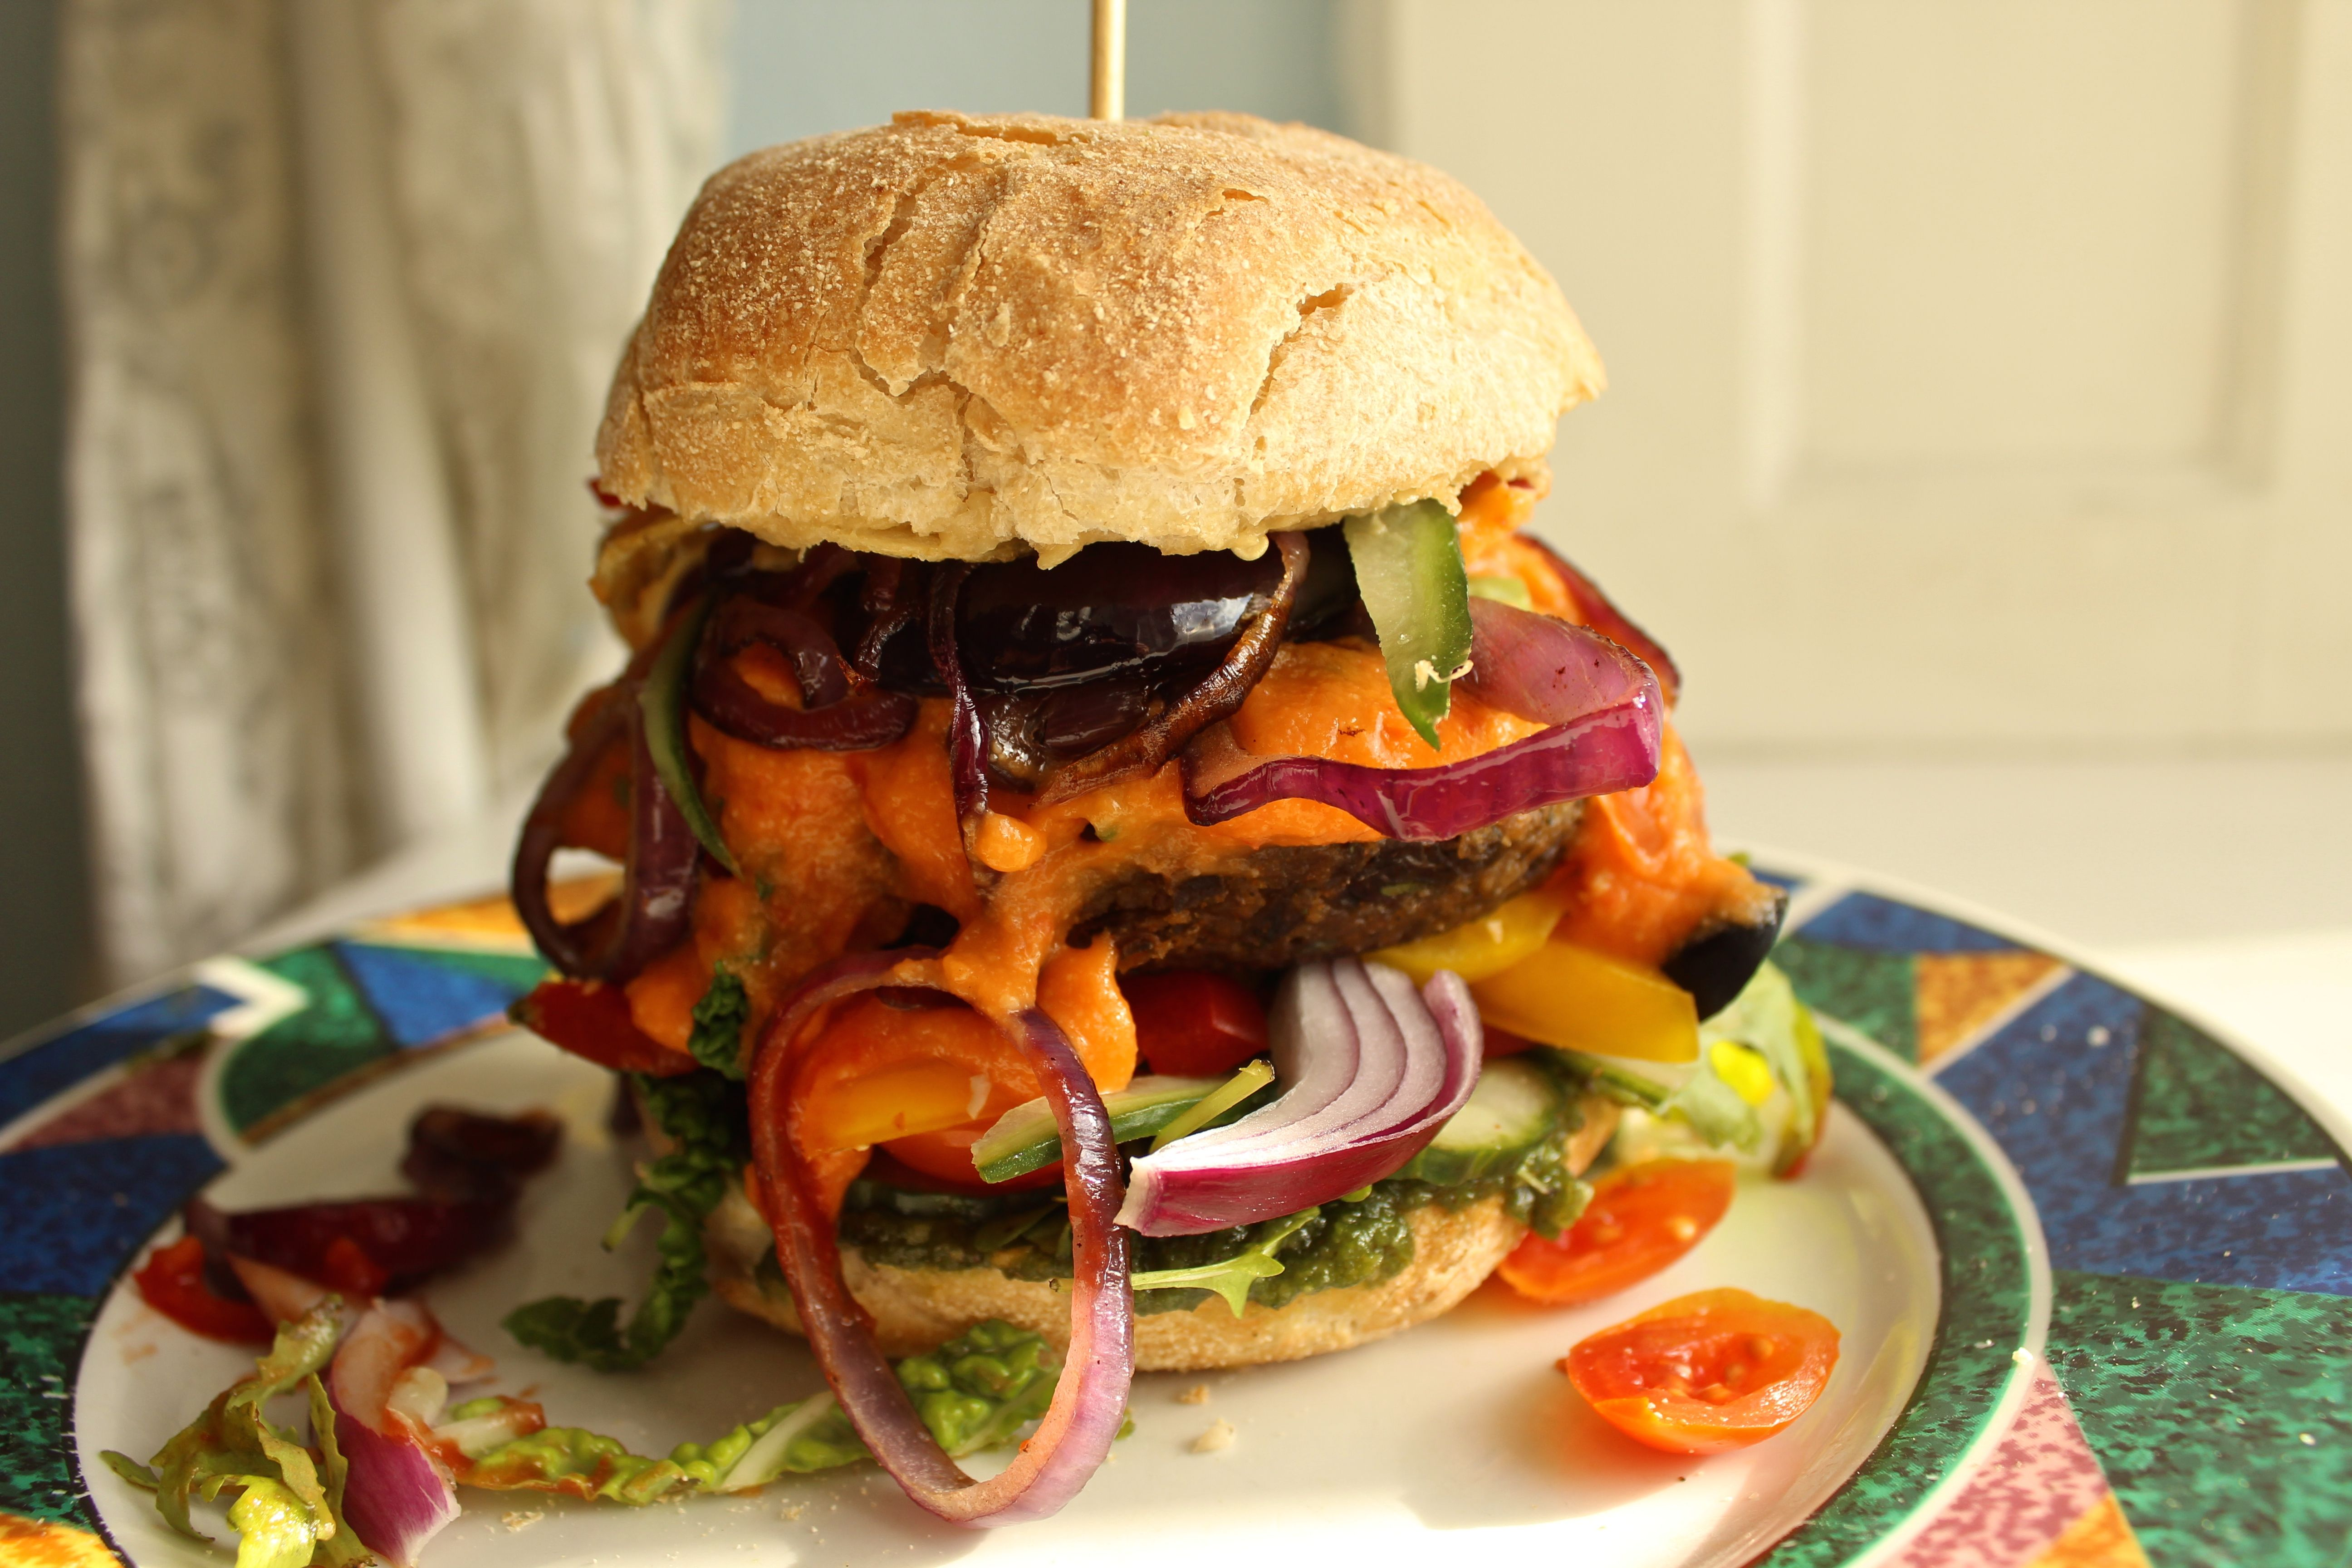 Scooby Doo Burger vegan epic Vegan Burgers Pinterest